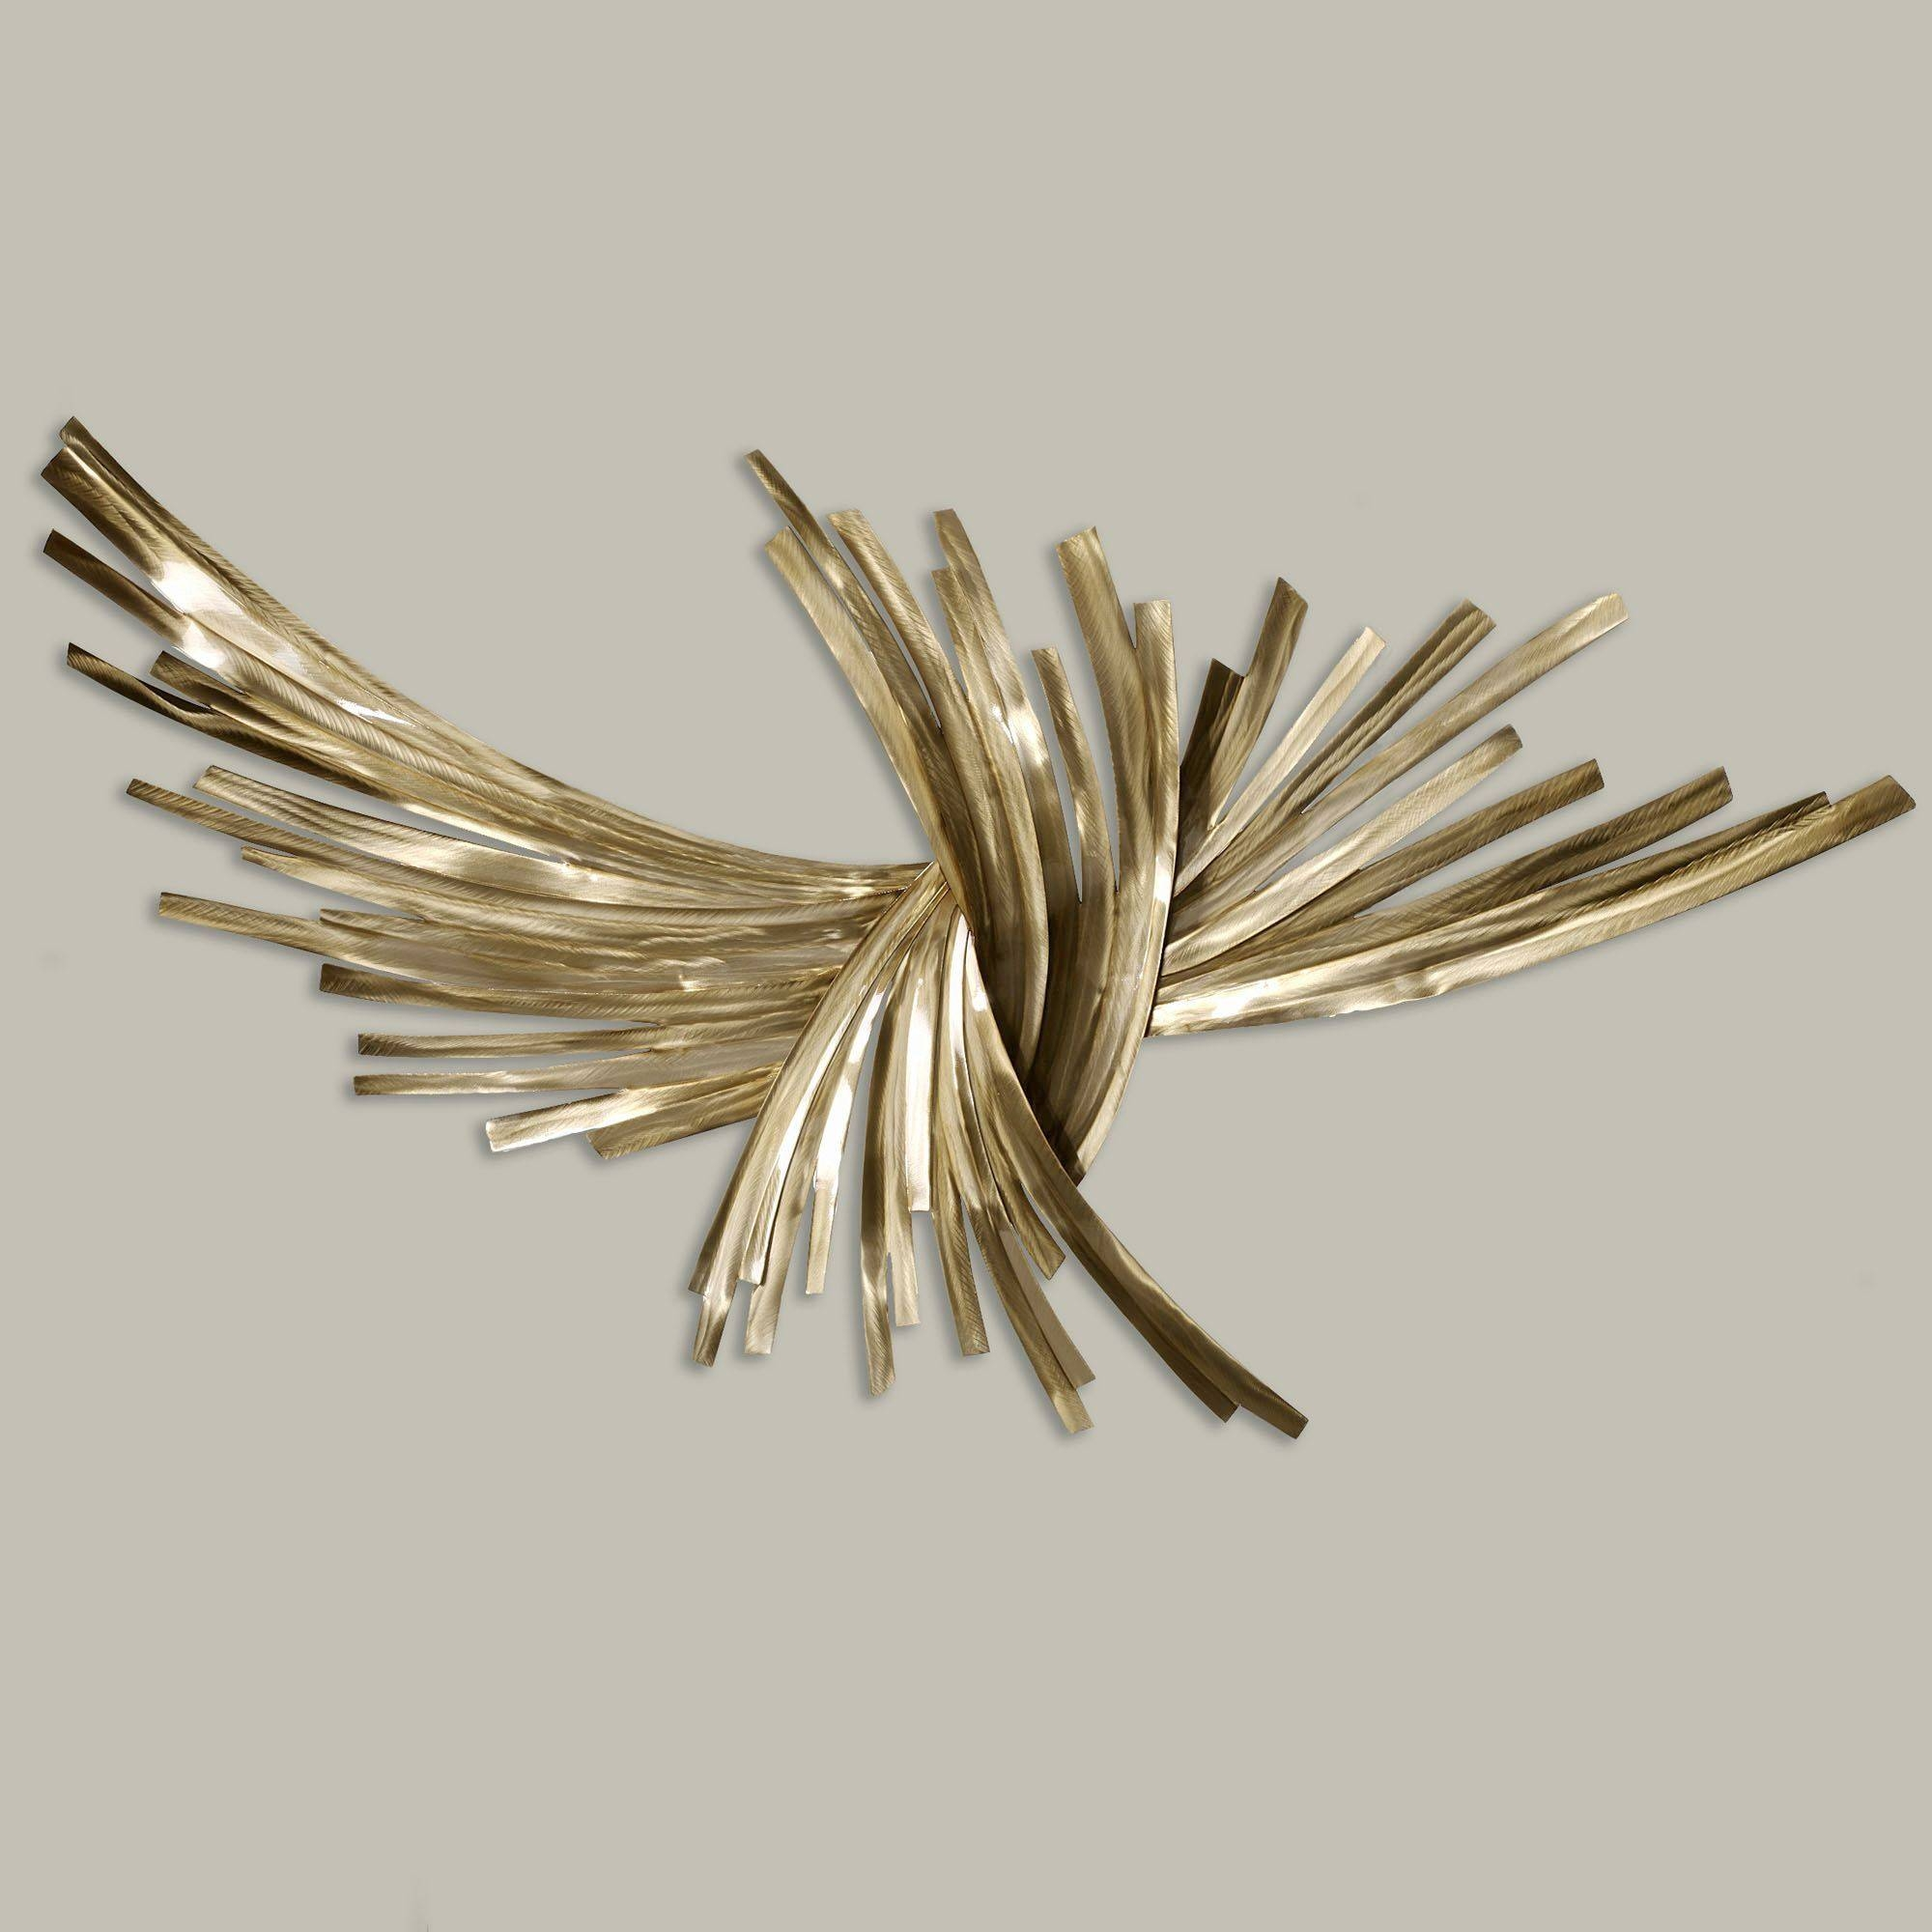 Contemporary Metal Wall Art Sculptures | Touch Of Class Inside Best And Newest Geometric Metal Wall Art (View 4 of 20)